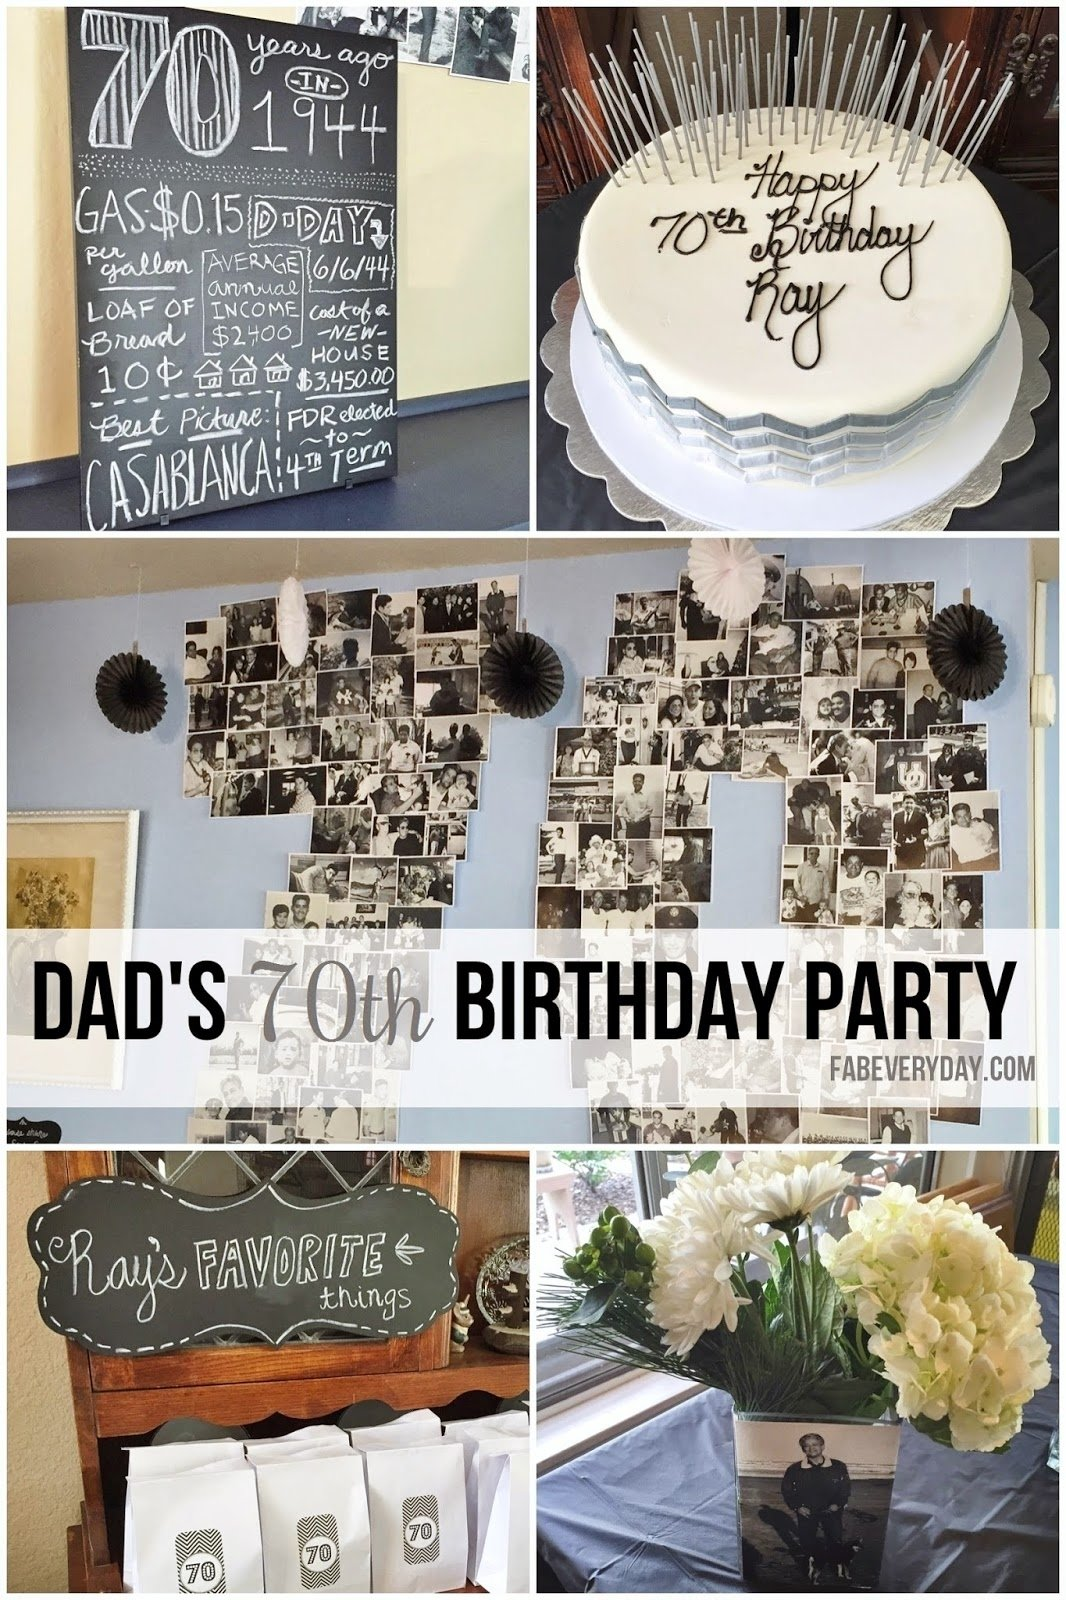 10 Stunning 70 Year Old Birthday Party Ideas fab everyday because everyday life should be fabulous www 2 2020